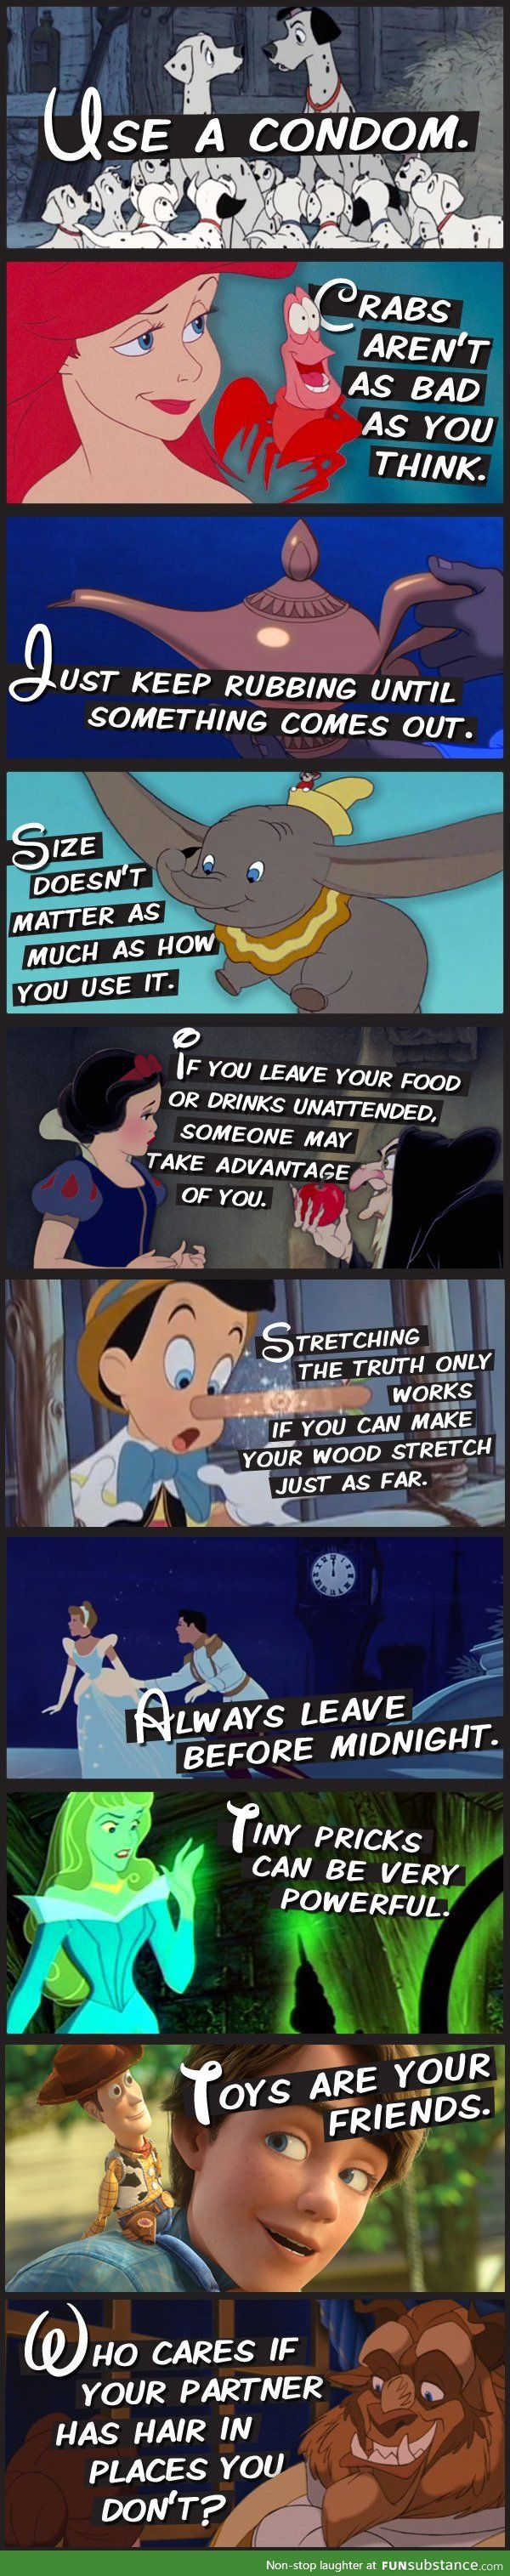 10 lessons to be learned from Disney... too funny